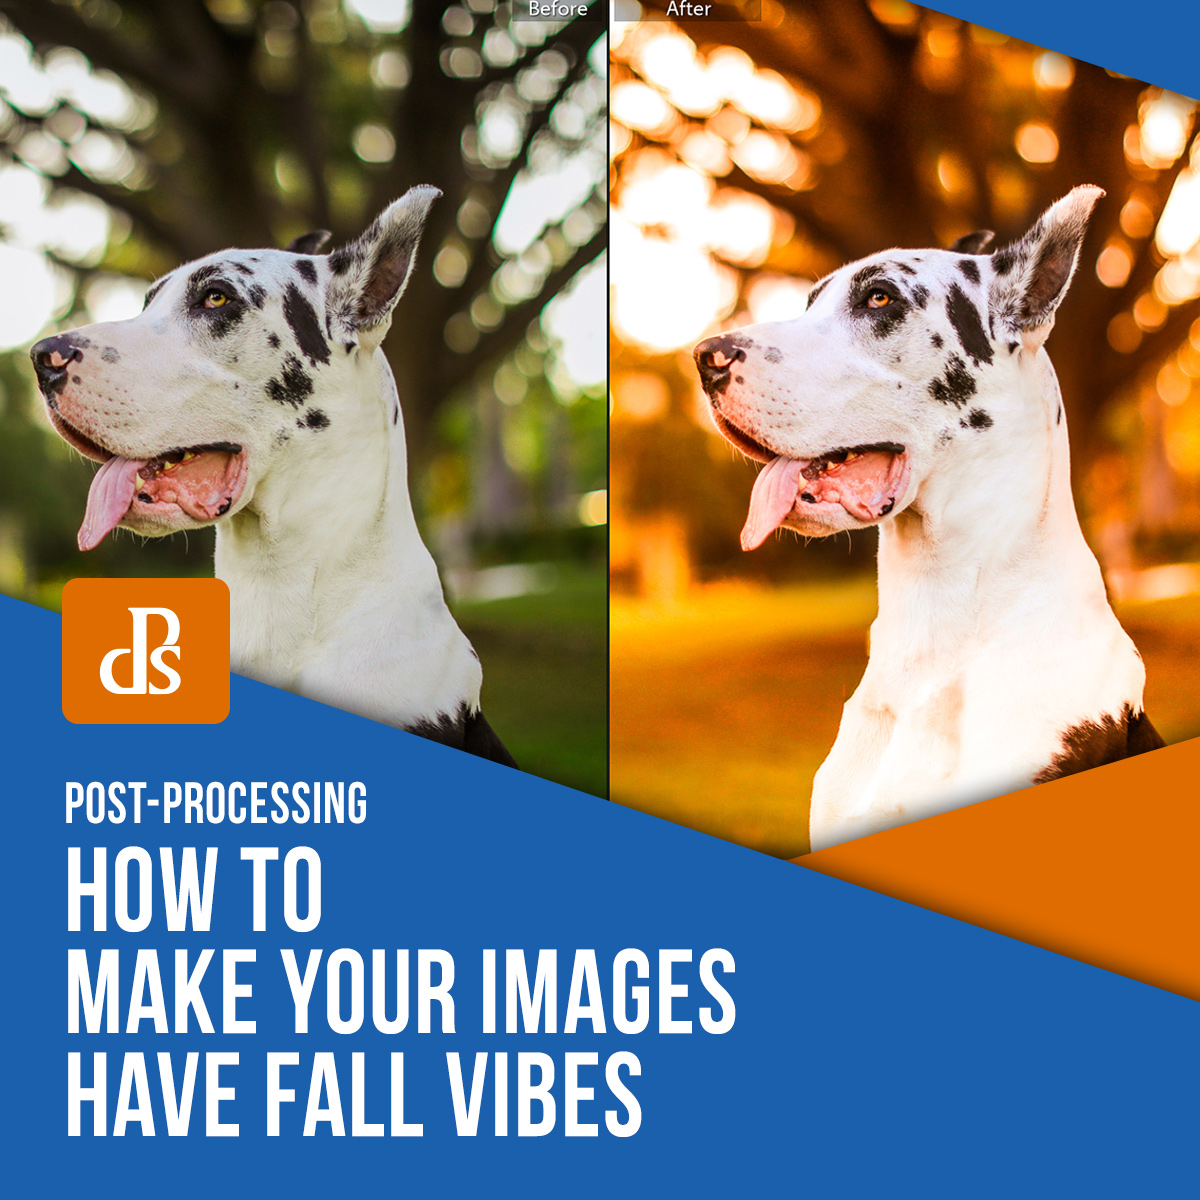 how-to-make-your-images-have-fall-vibes